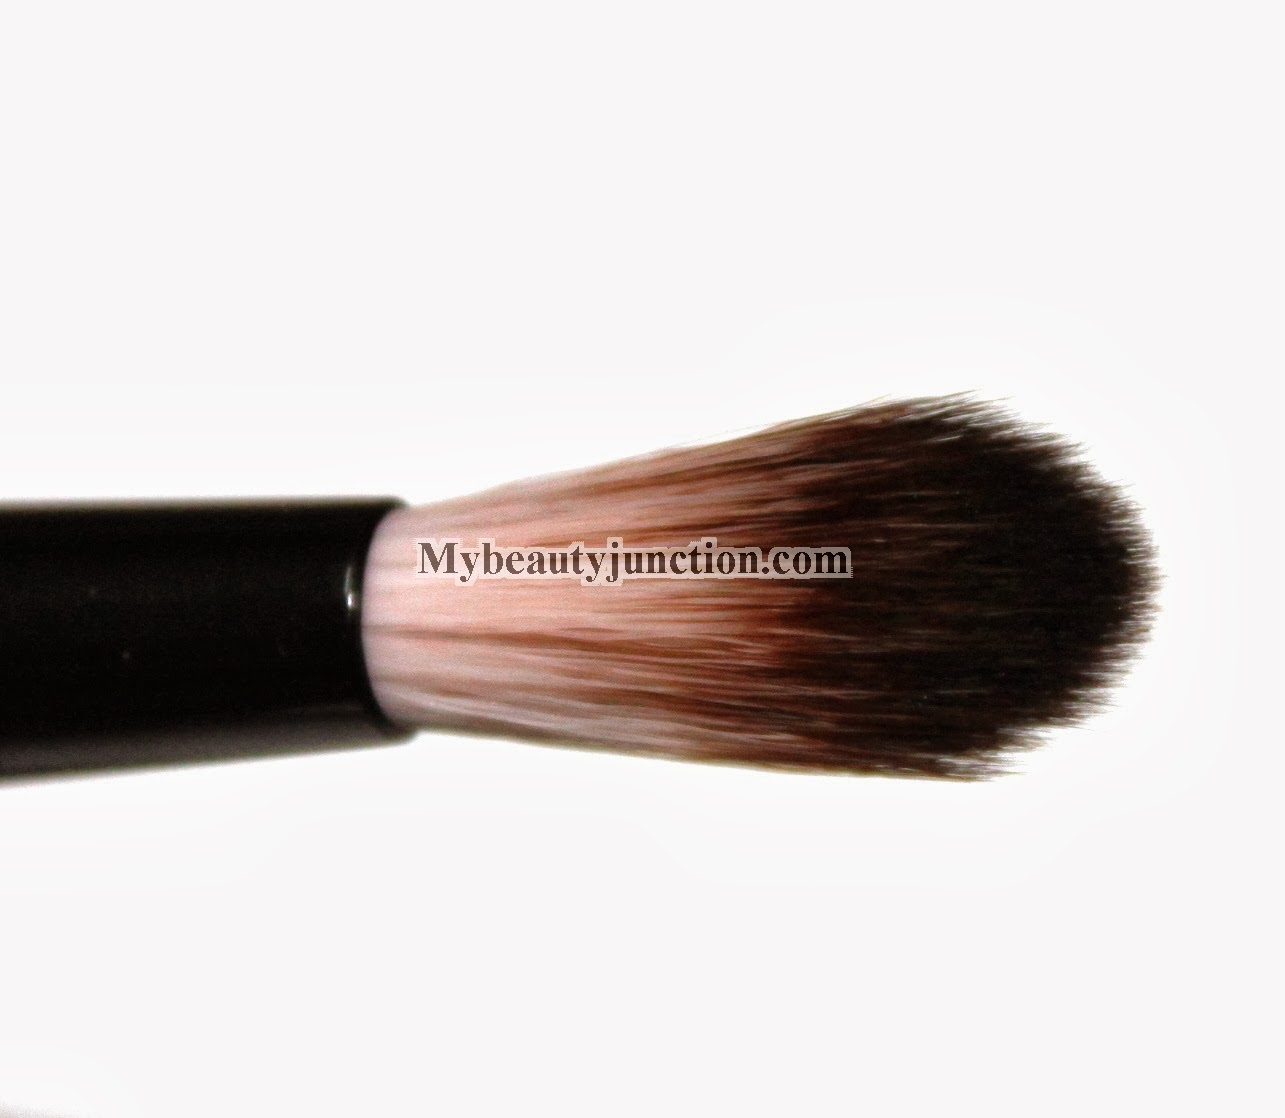 Too Faced Teddy Hair Shadow Brushes Essential 3-Piece set review